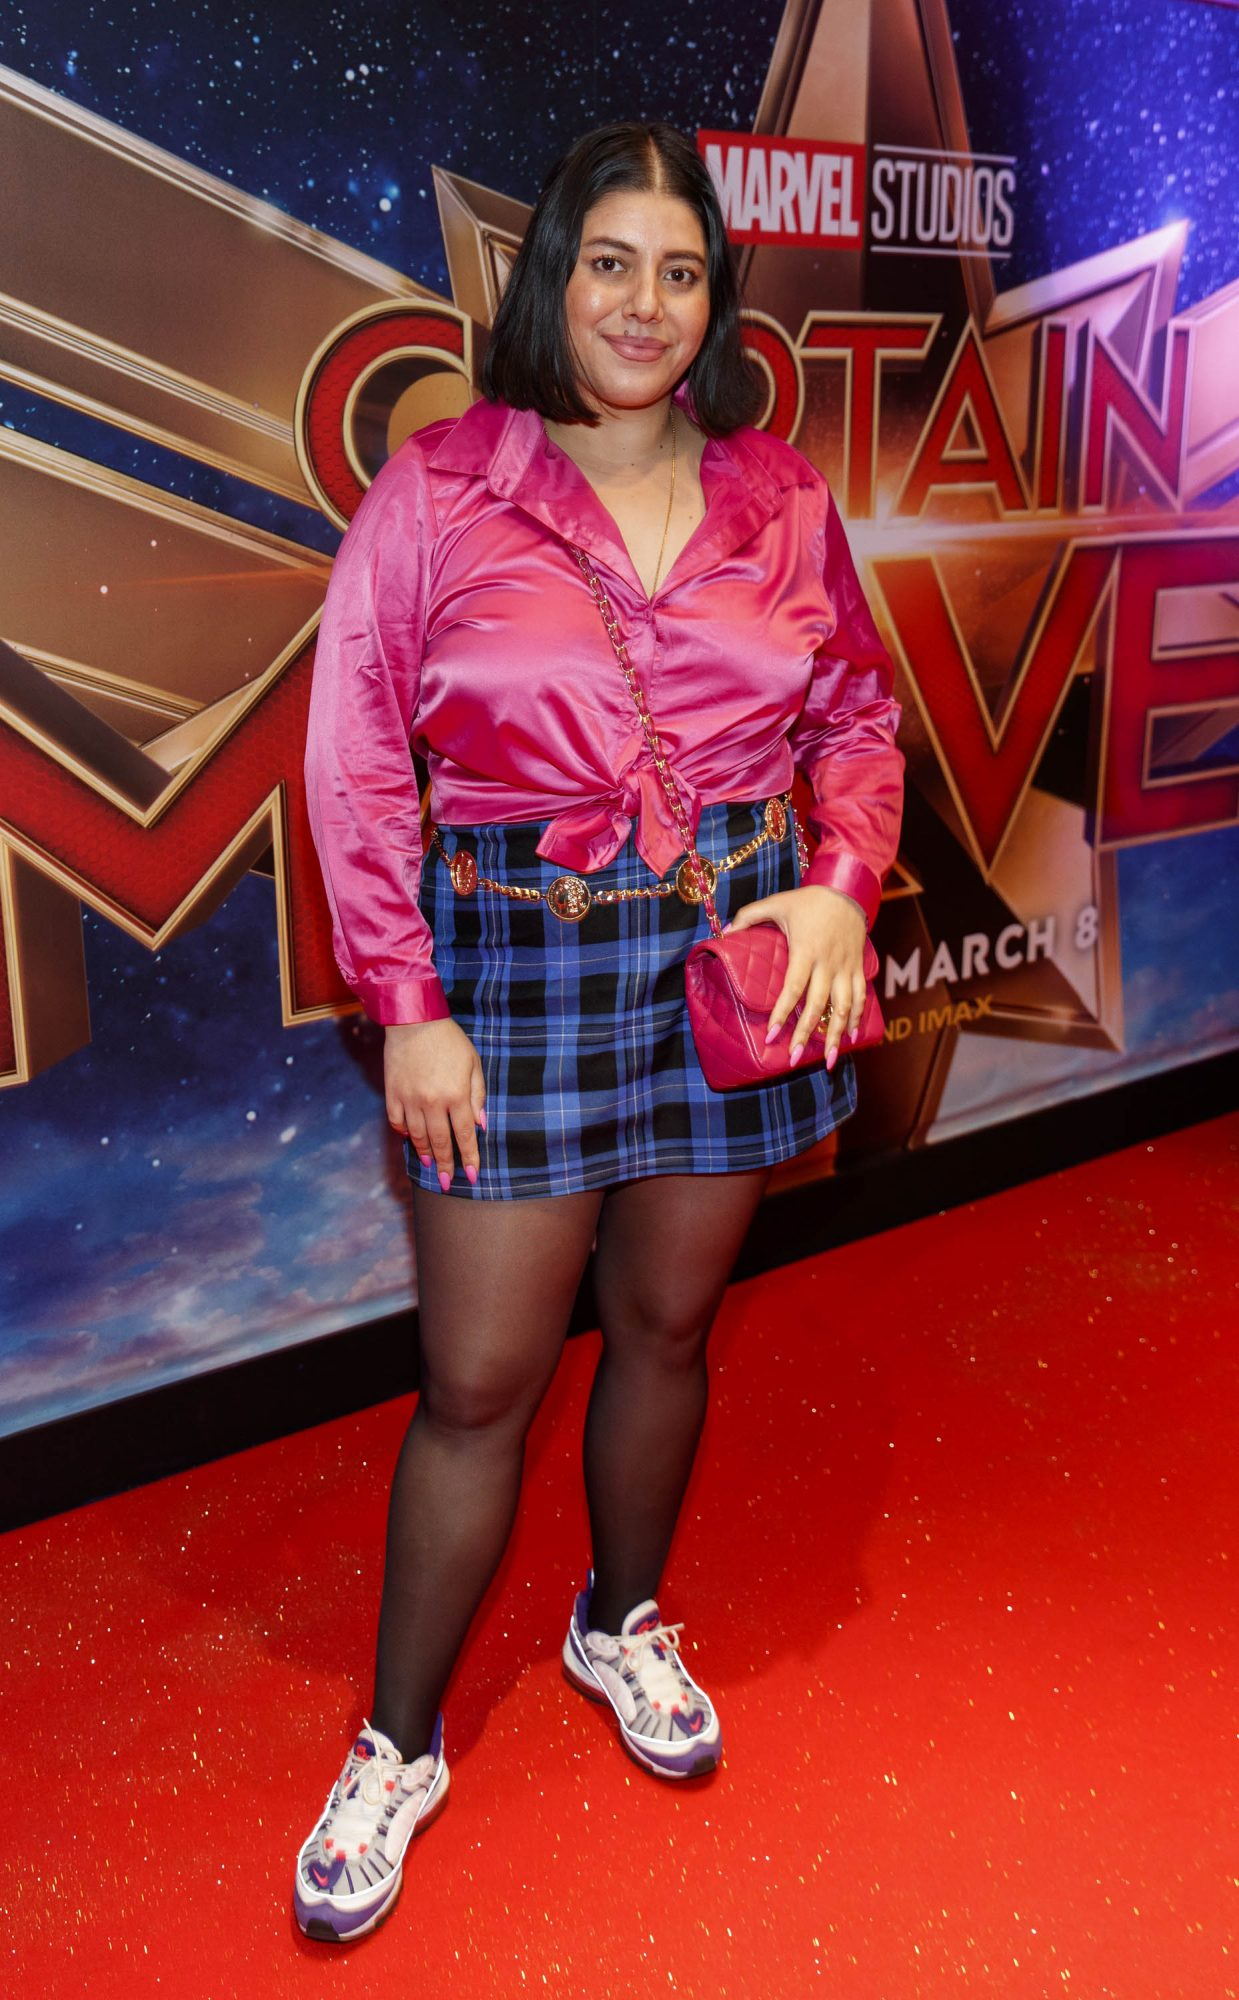 Tara Stewart pictured at a special preview screening of CAPTAIN MARVEL in Cineworld Dublin. Picture by: Andres Poveda